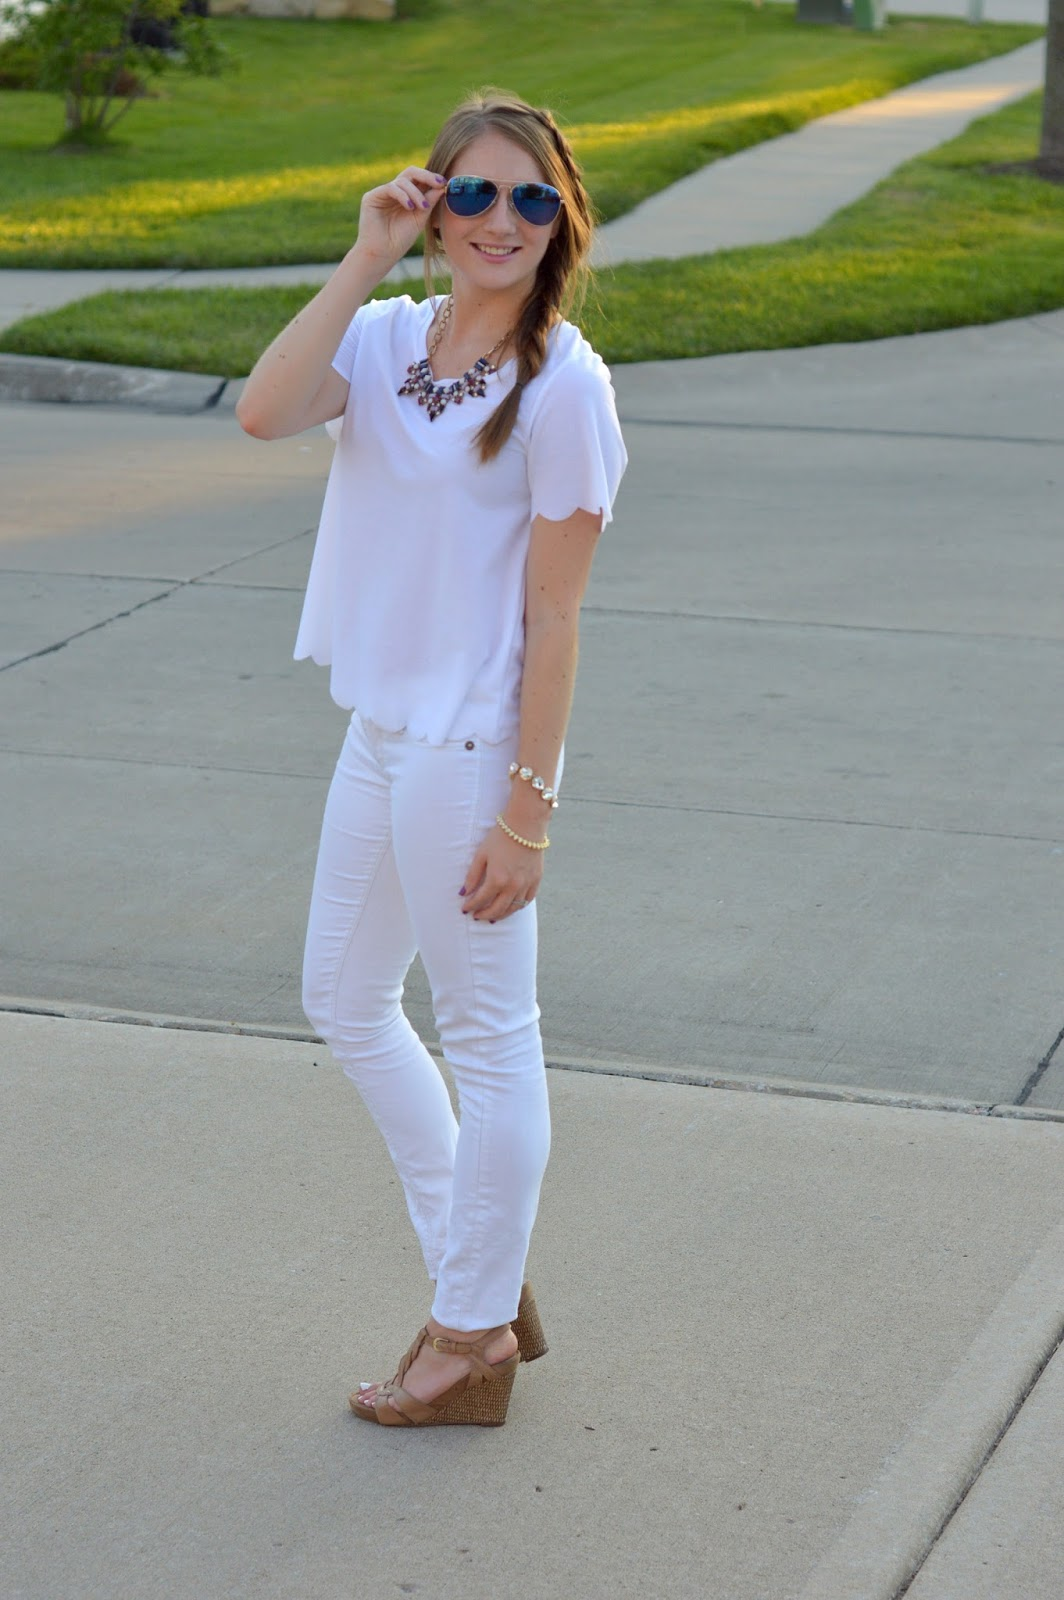 white on white outfit idea | what to wear this summer | white scalloped top | how to style an all white outfit | monochrome outfit ideas | what to wear this summer | cute outfit ideas for summer | a memory of us | kansas city fashion blog |